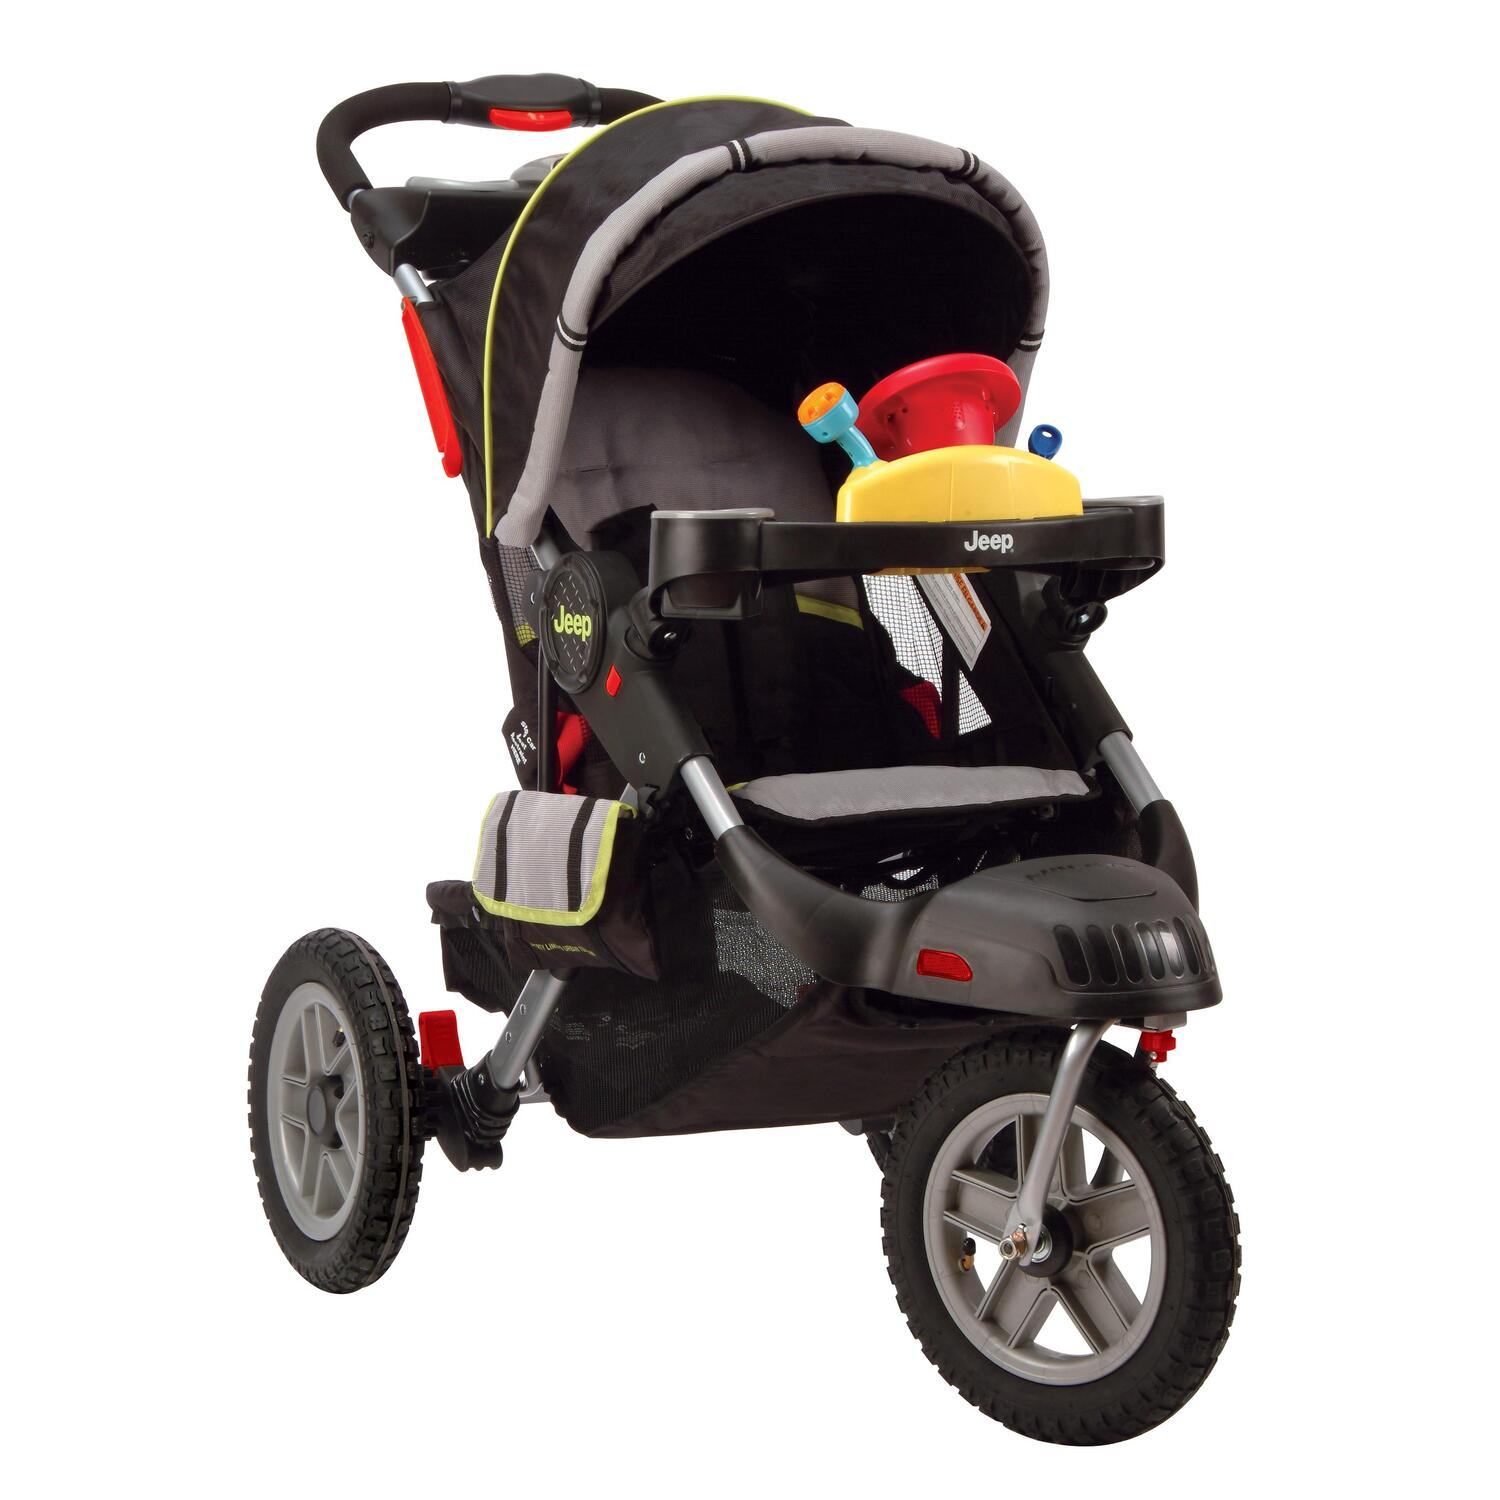 Chicco Urban Stroller Accessories Jeep Liberty Limited Urban Terrain 3 Wheel Stroller